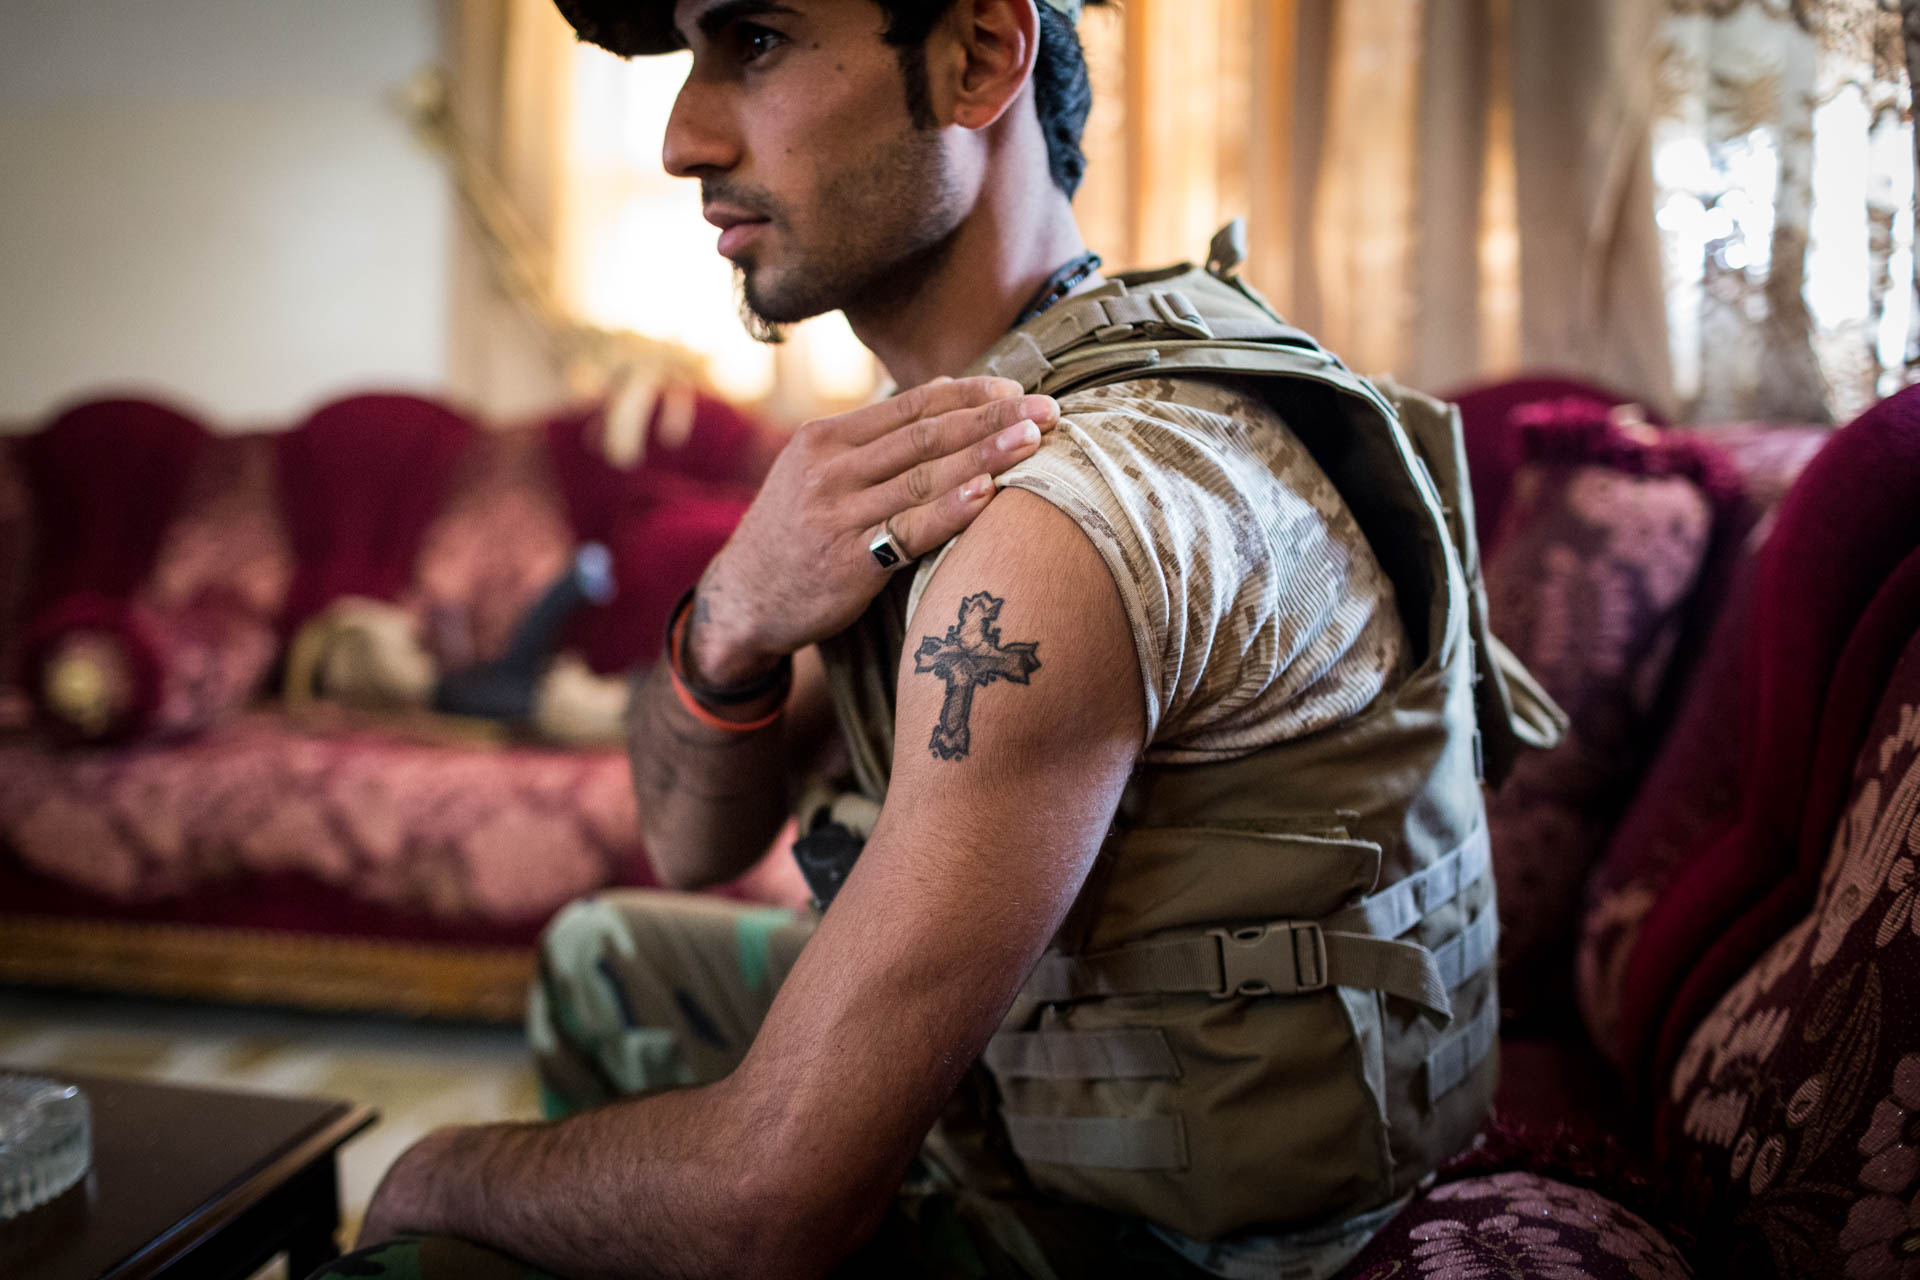 Ronie, a member of the group, shows one of his tattoos. When the war is over, he wants to be an actor.